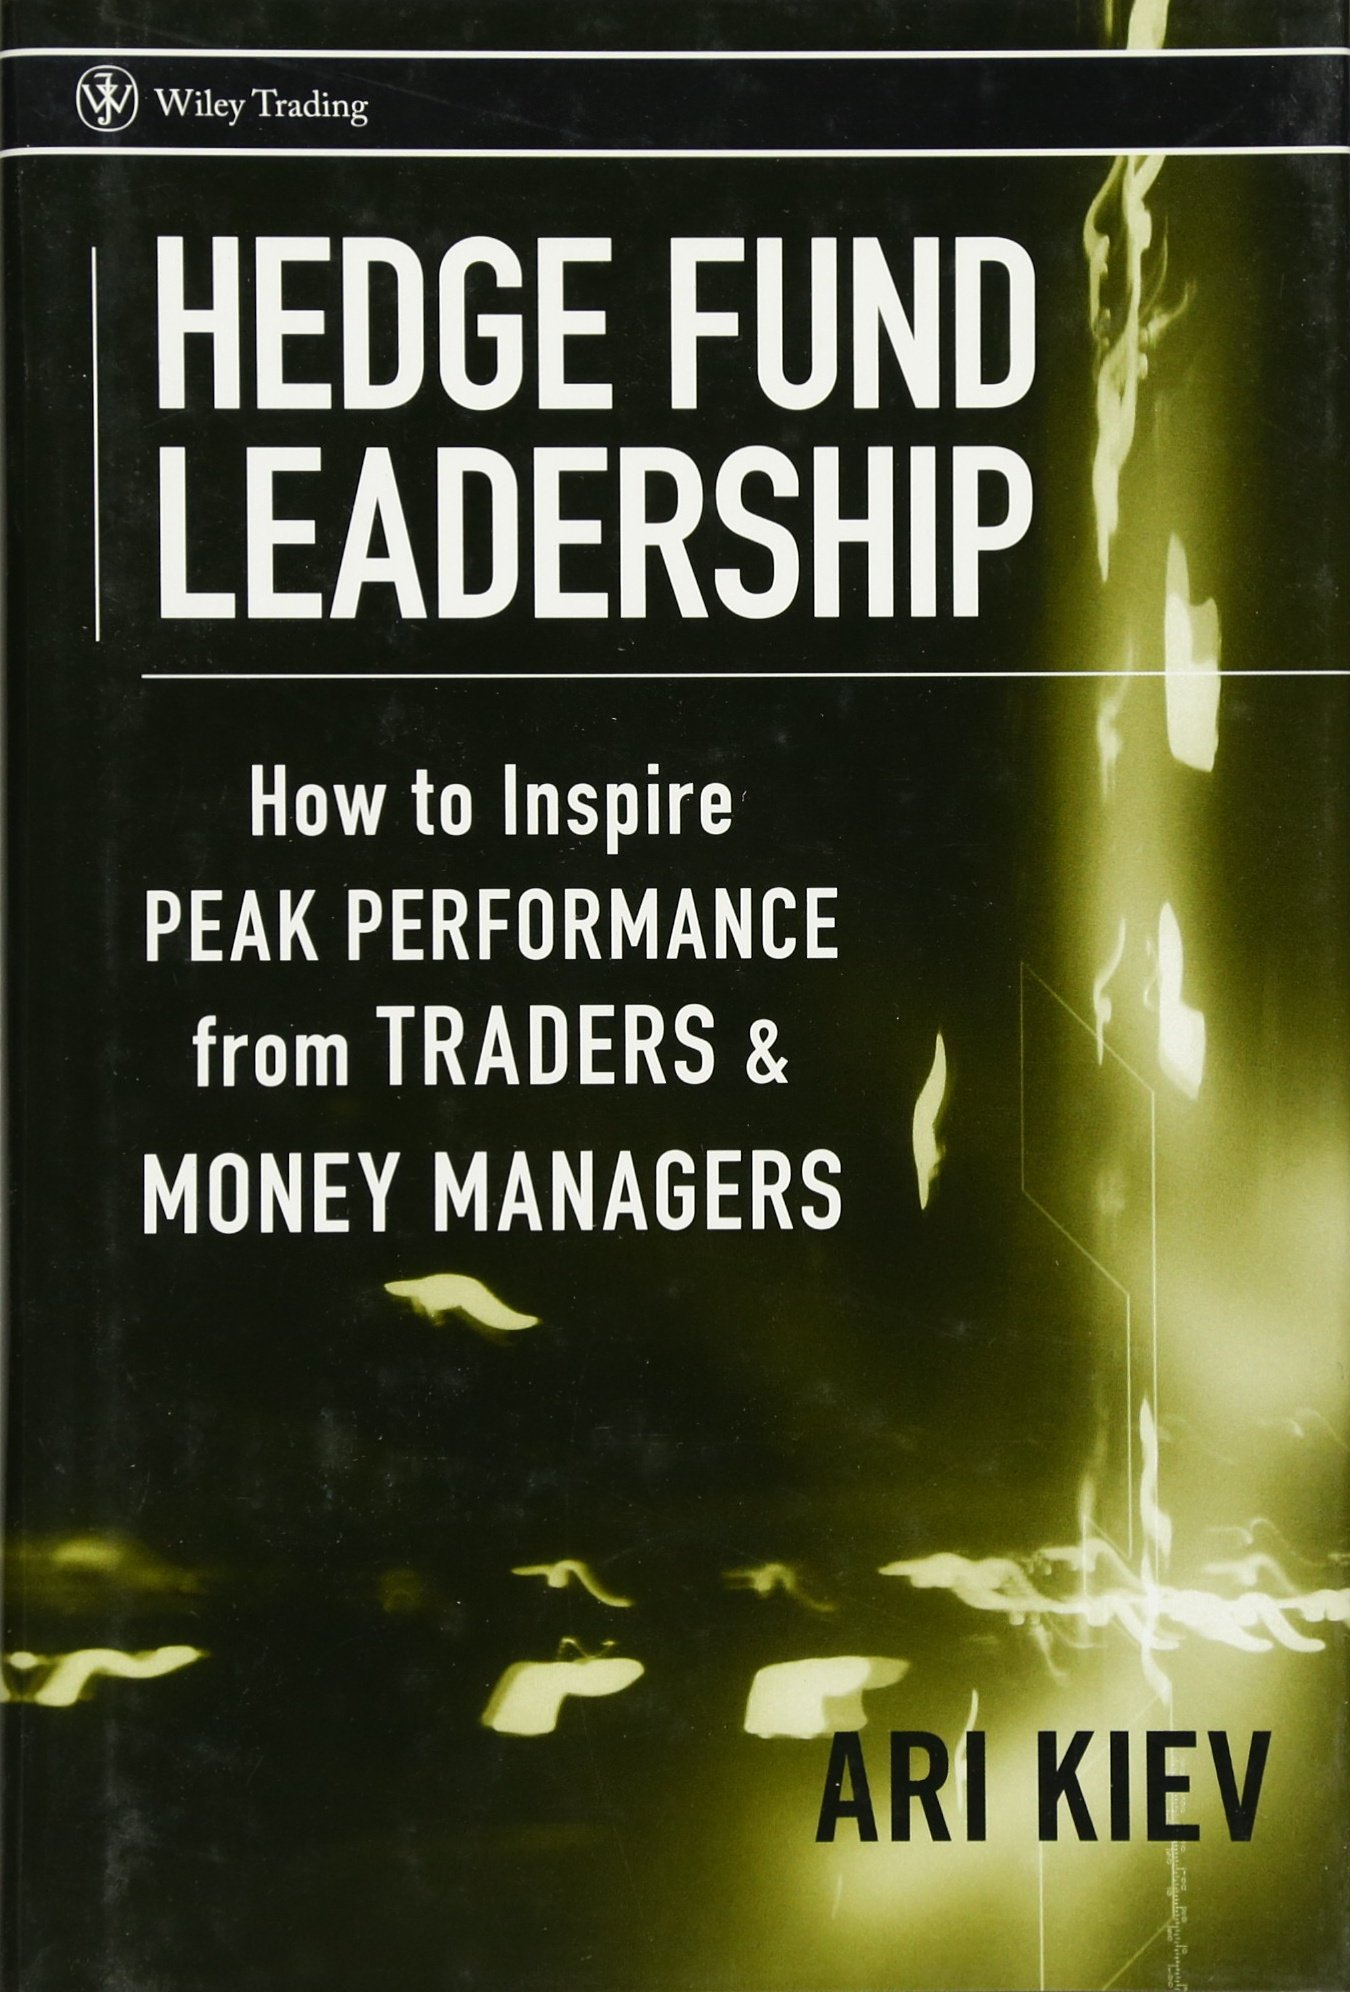 Hedge Fund Leadership: How To Inspire Peak Performance from Traders and Money Managers